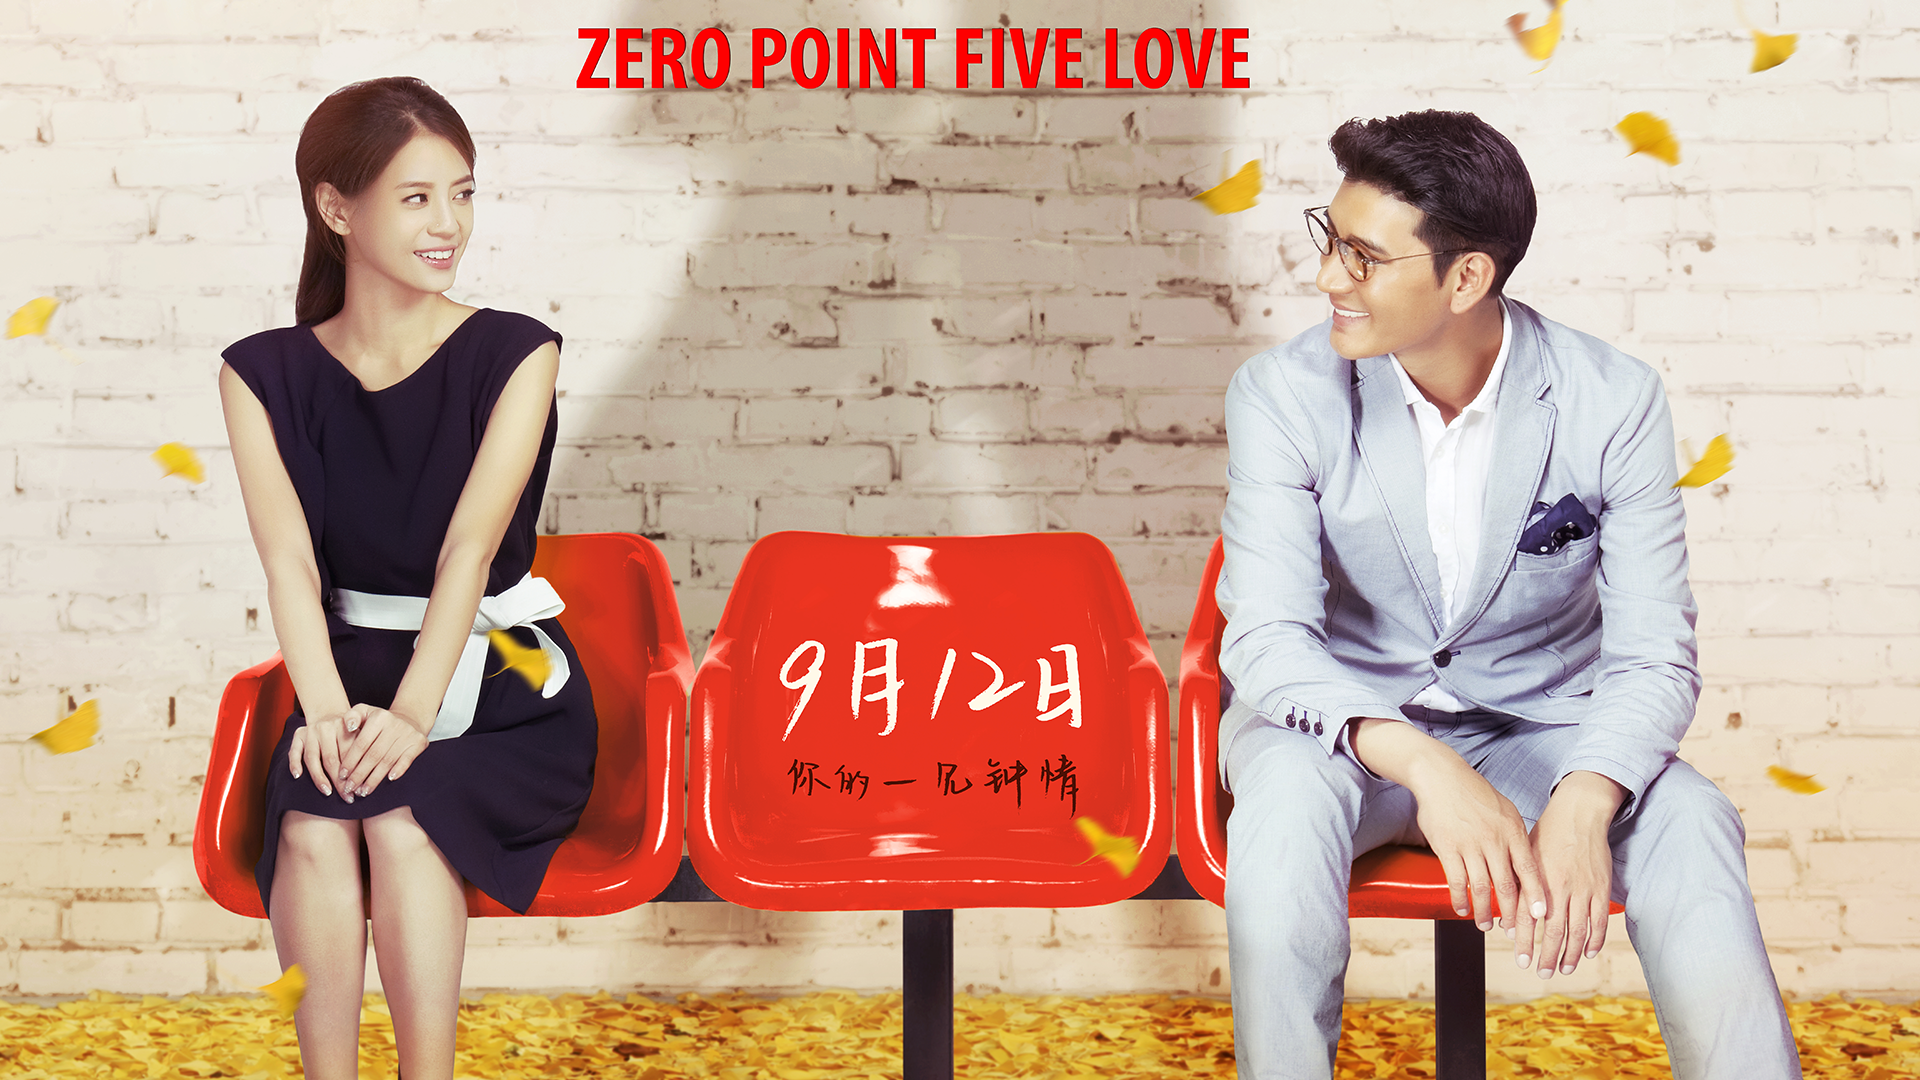 Zero Point Five Love